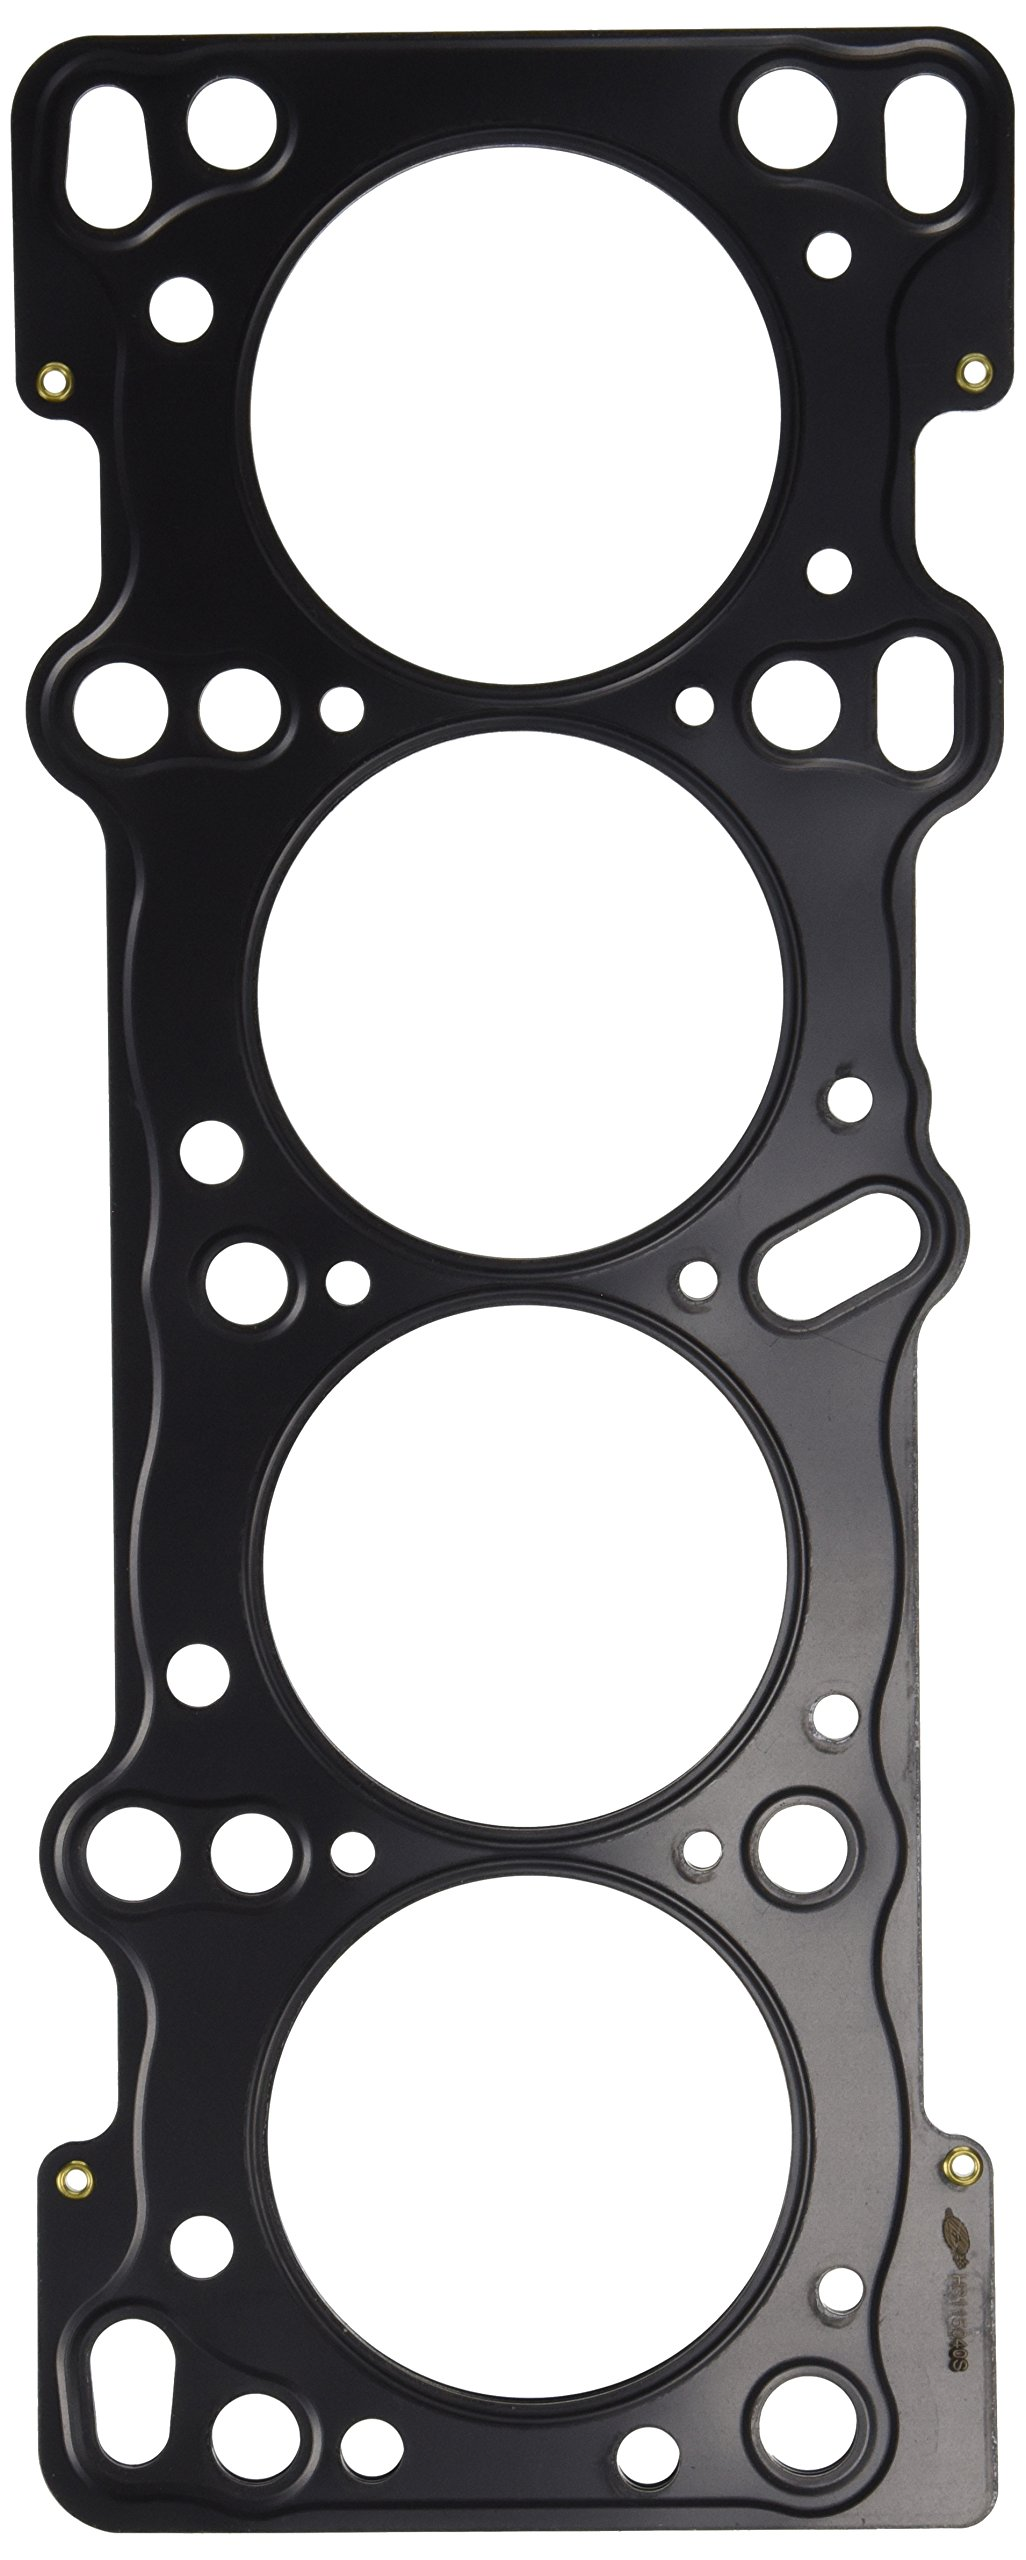 Cometic C4560-040 Head Gasket